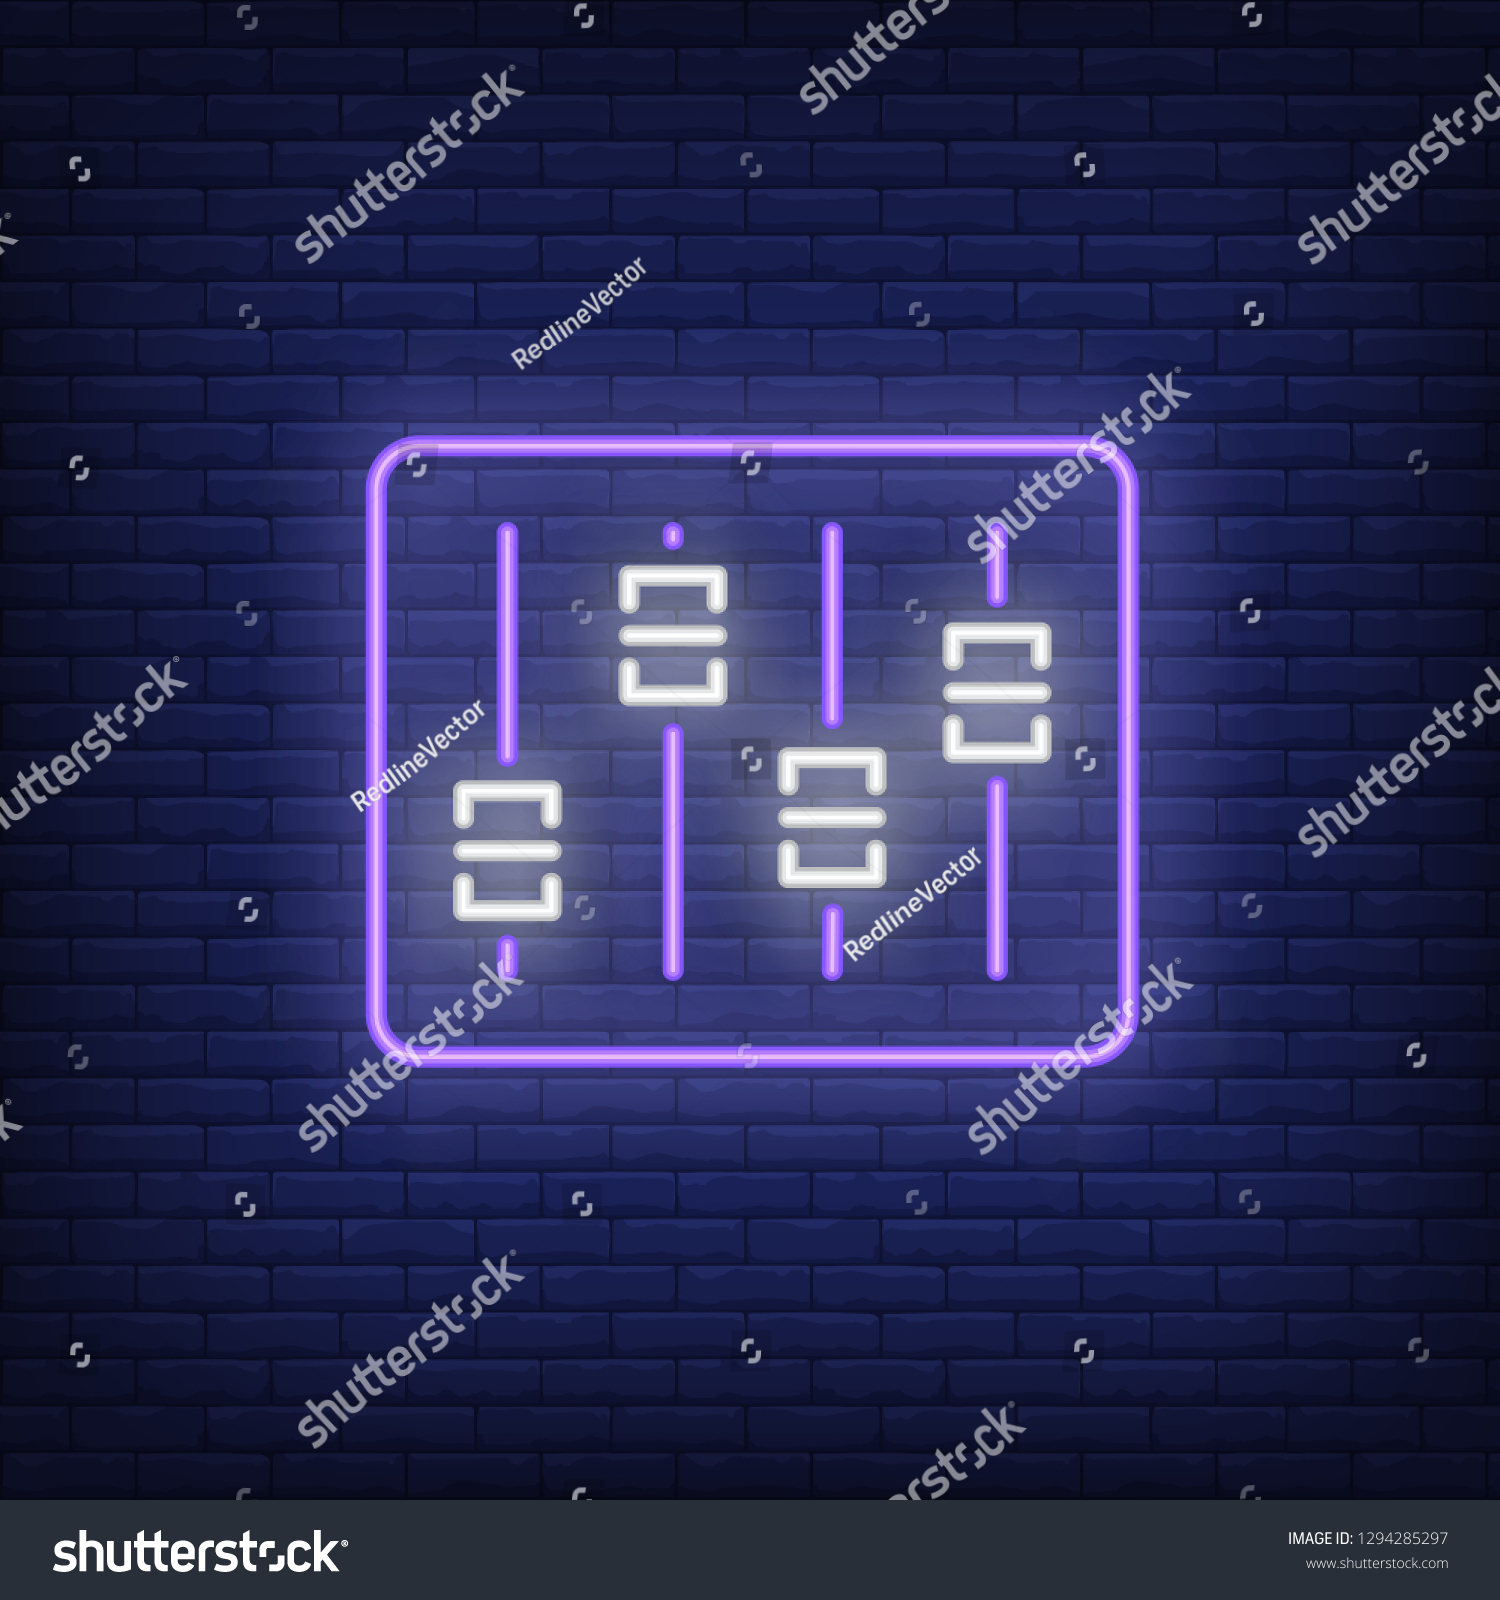 hight resolution of audio console neon sign luminous signboard with faders on control desk night bright advertisement vector illustration in neon style for record studio